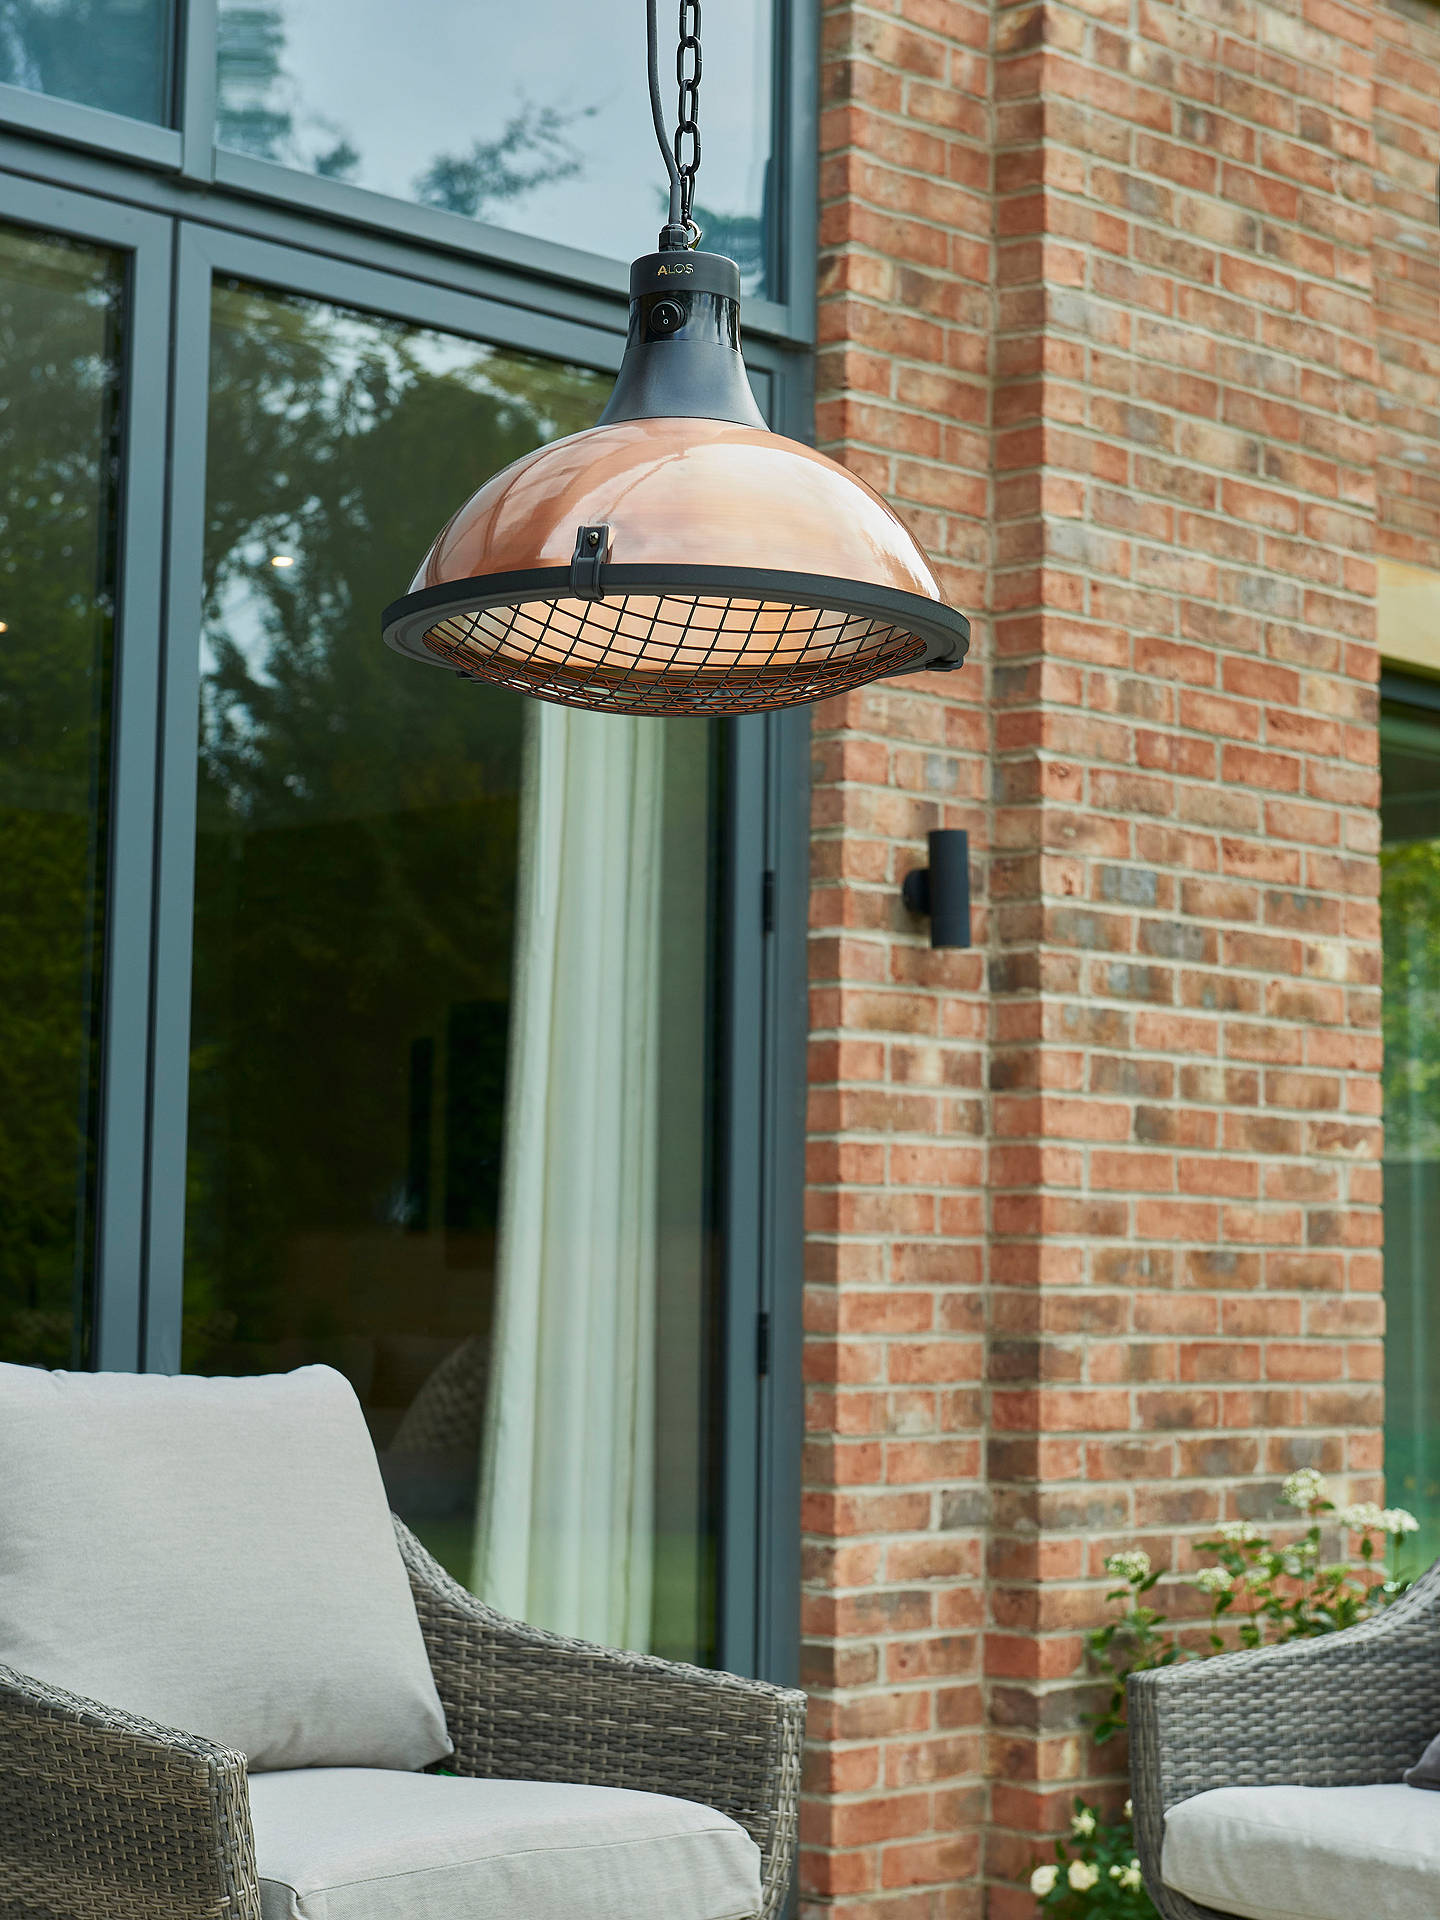 Buy KETTLER Kalos Copper Hanging Pendant Electric Patio Heater Online at johnlewis.com